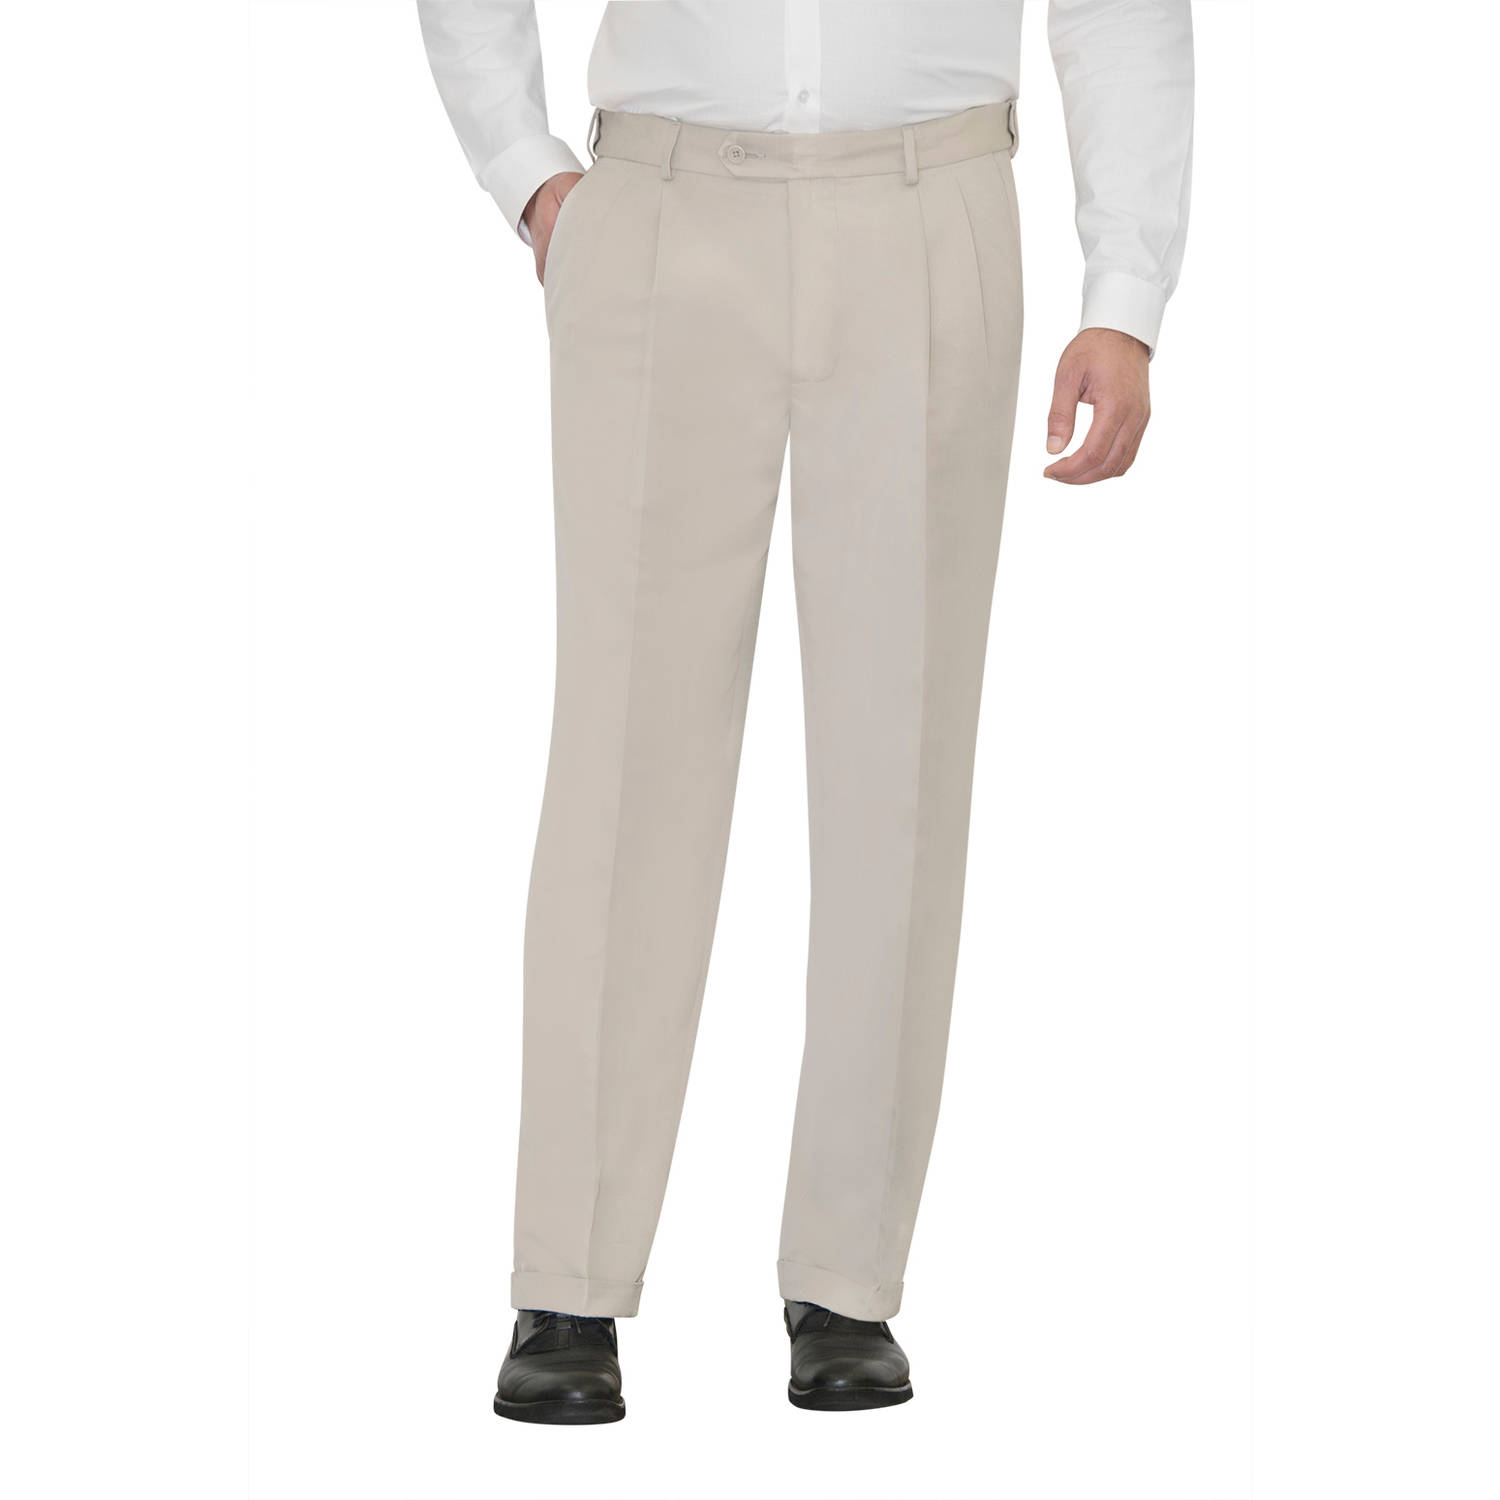 George Men's Wrinkle-Resistant Pleat Front Dress Pants